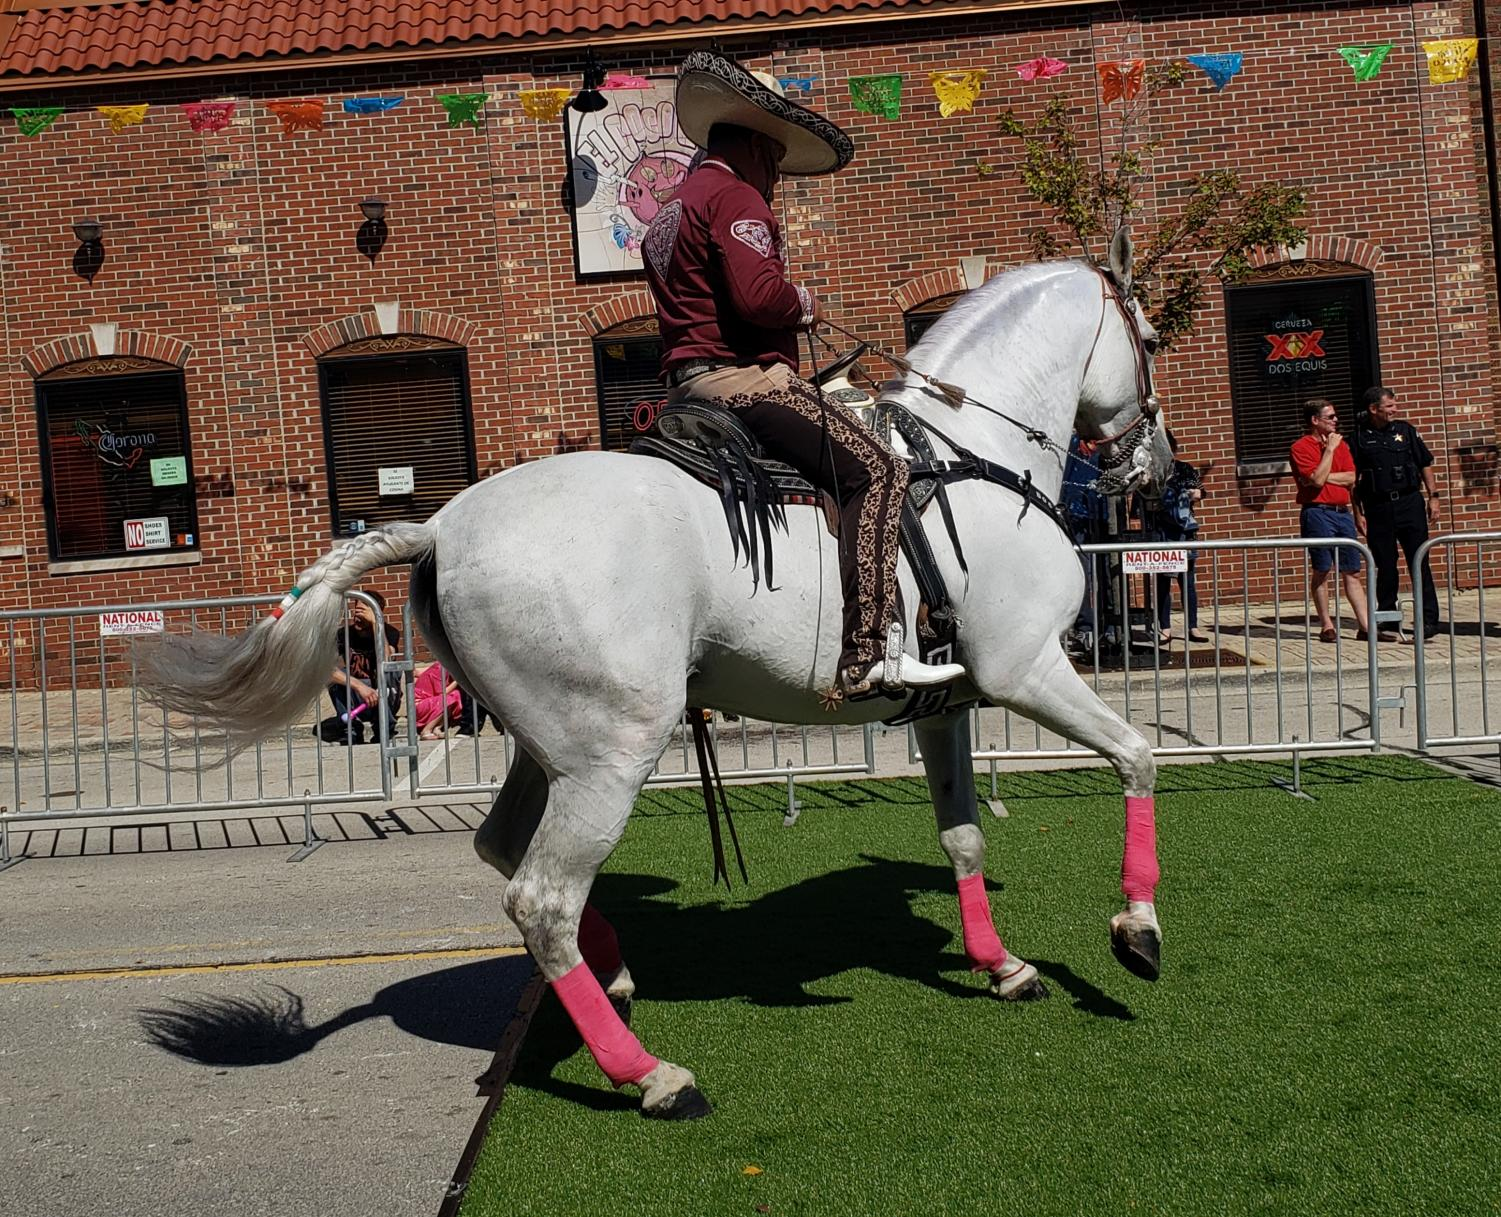 Dancing horses open the Mexican Independence Day event in downtown West Chicago on Sept. 14.